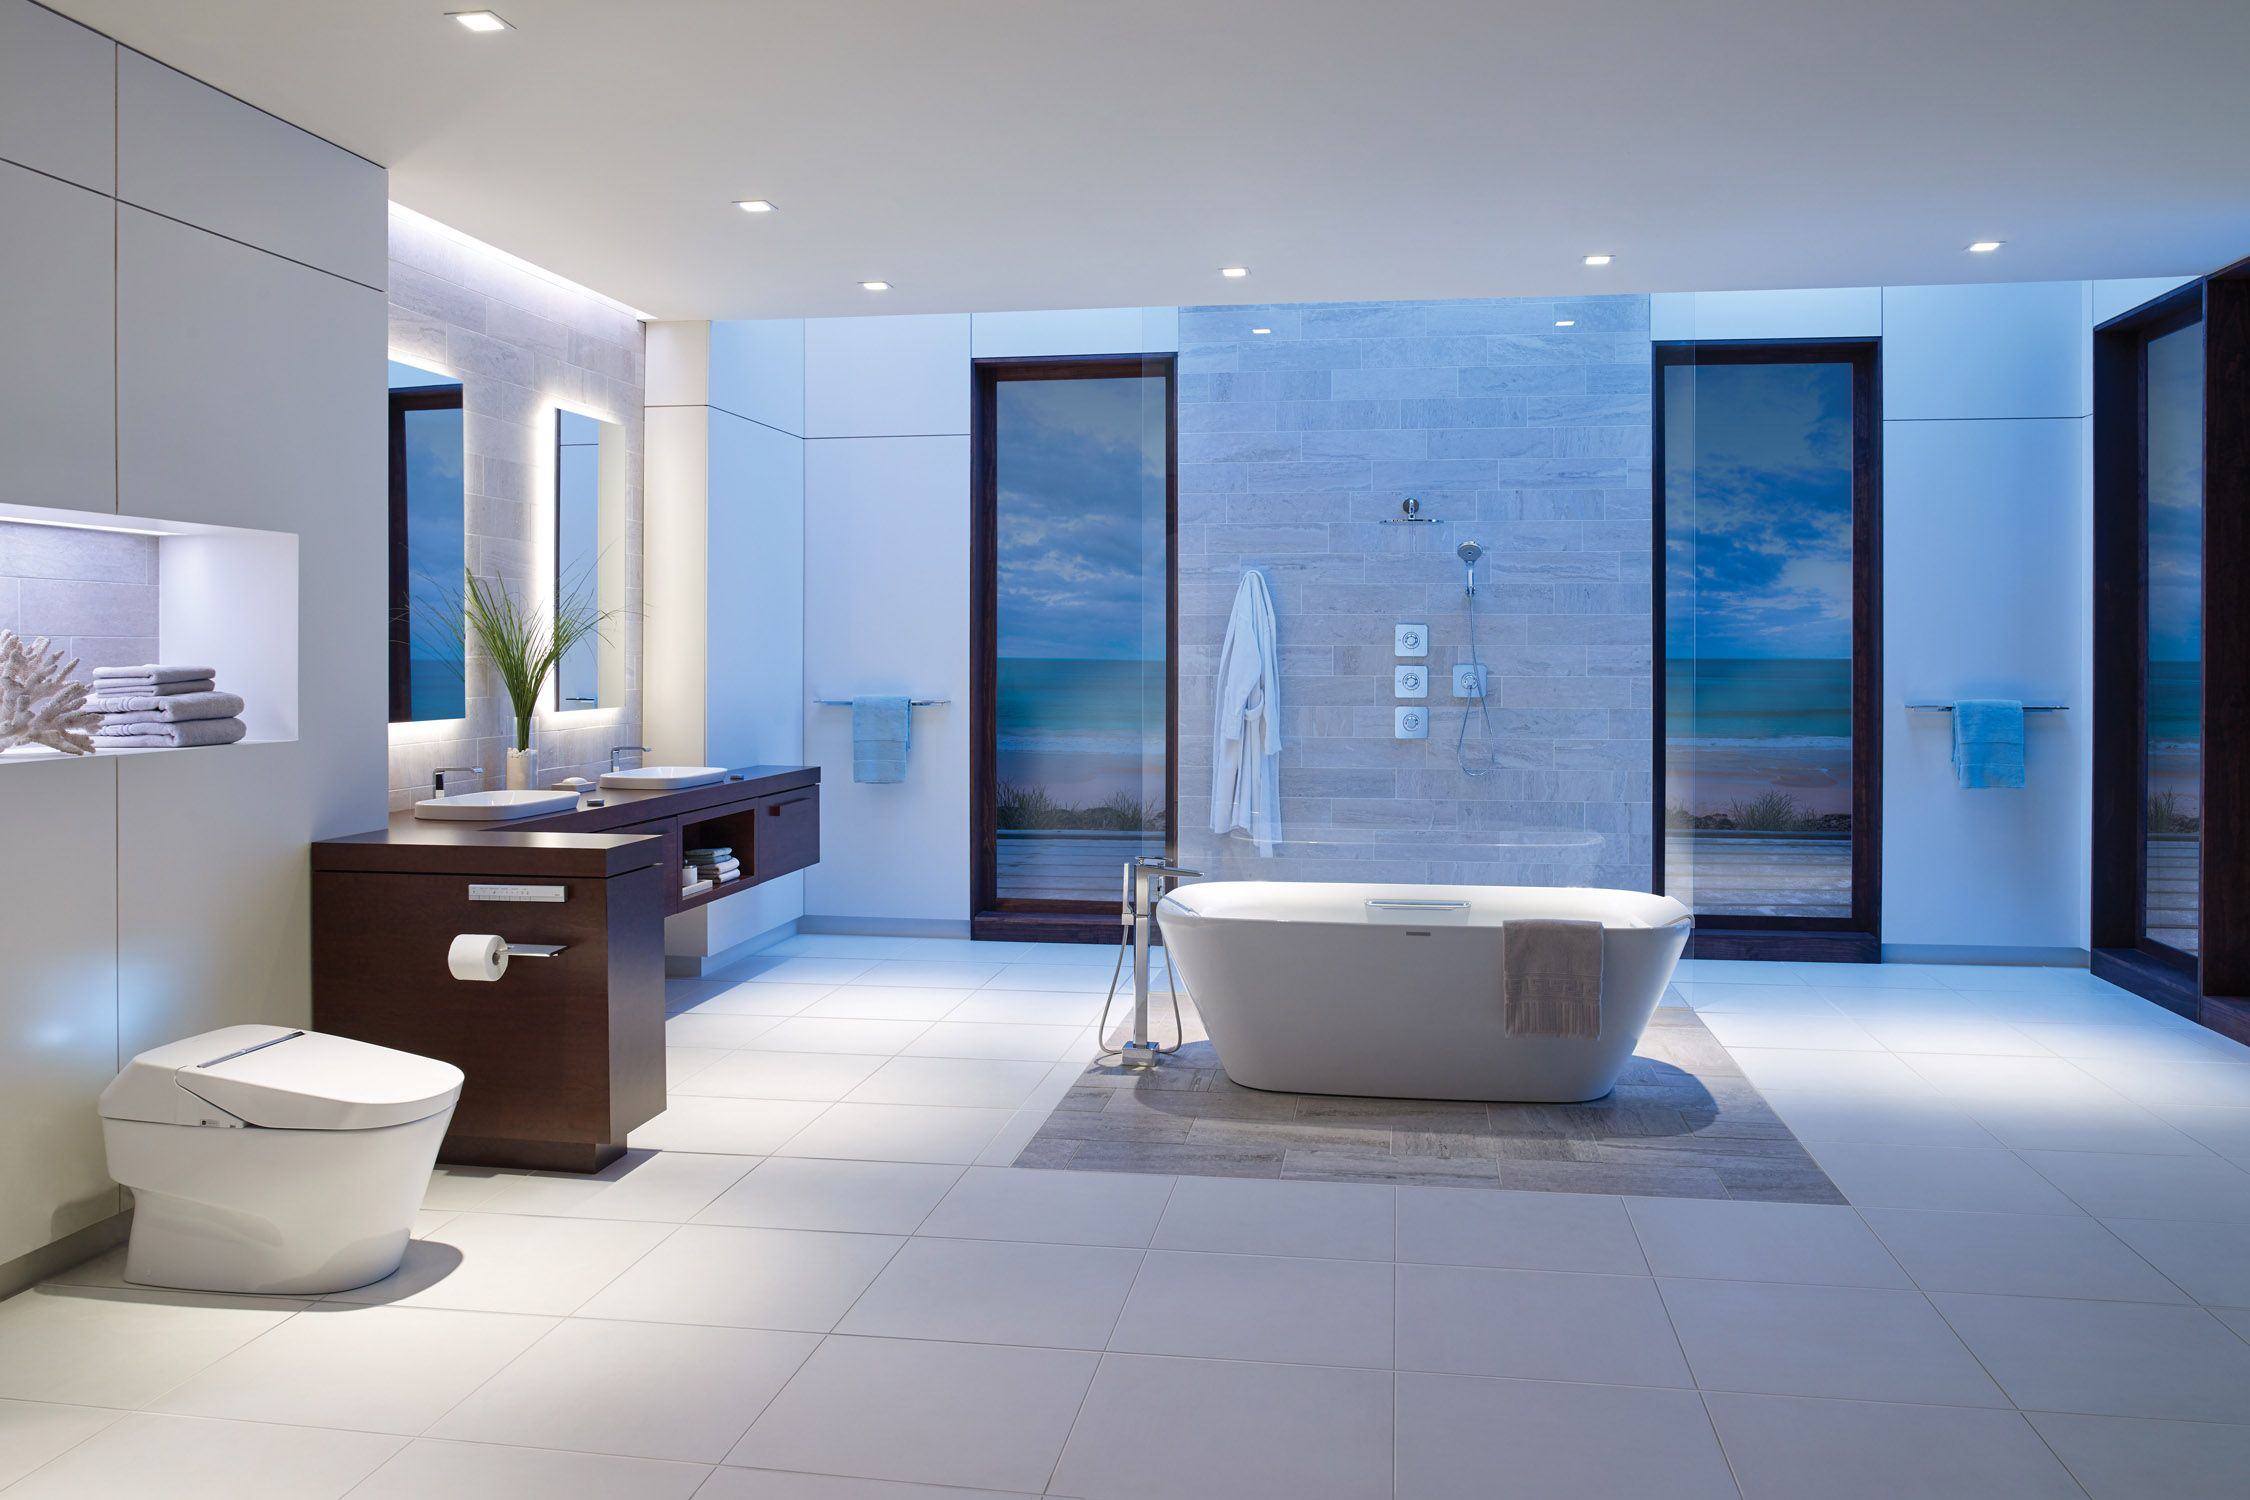 15 Dream Bathroom Inspiration - Photos of Beautiful Bathrooms